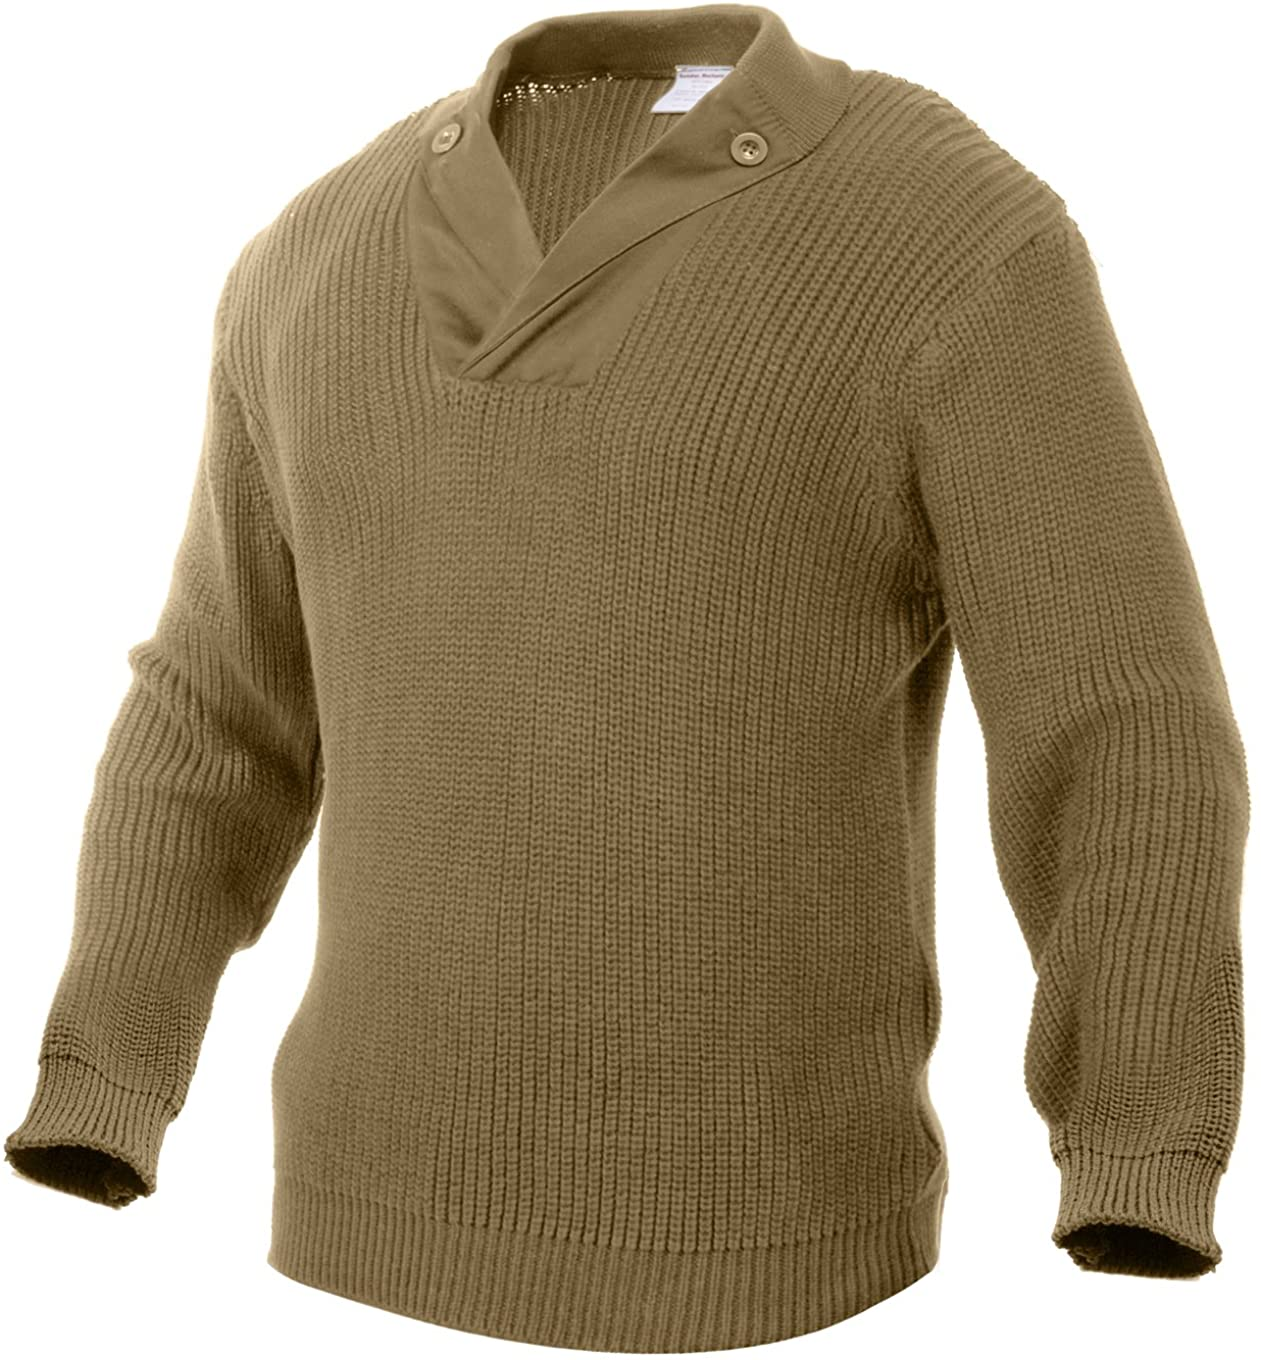 1940s Men's Shirts, Sweaters, Vests Rothco WWII Vintage Mechanics Sweater $55.99 AT vintagedancer.com